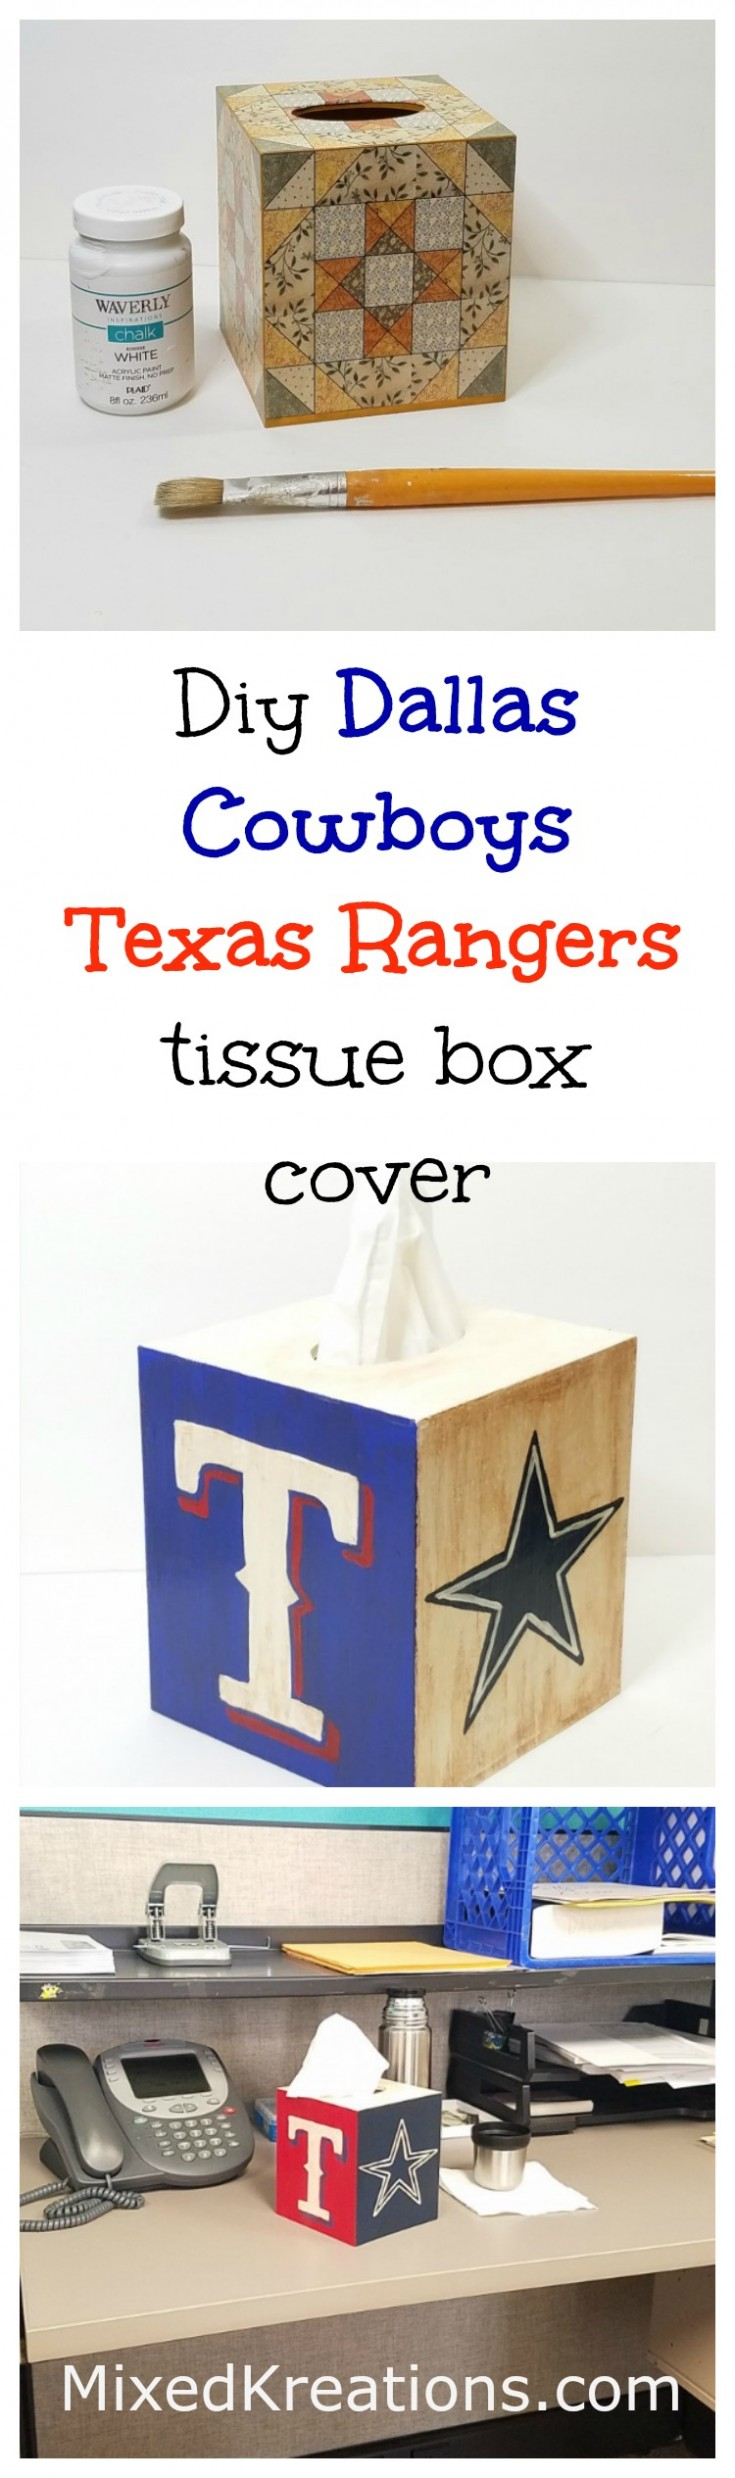 diy Dallas Cowboys Texas Rangers tissue box cover | How to makeover a tissue box cover #Upcycle #TissueBoxCover #ThriftStoreMakeover MixedKreations.com